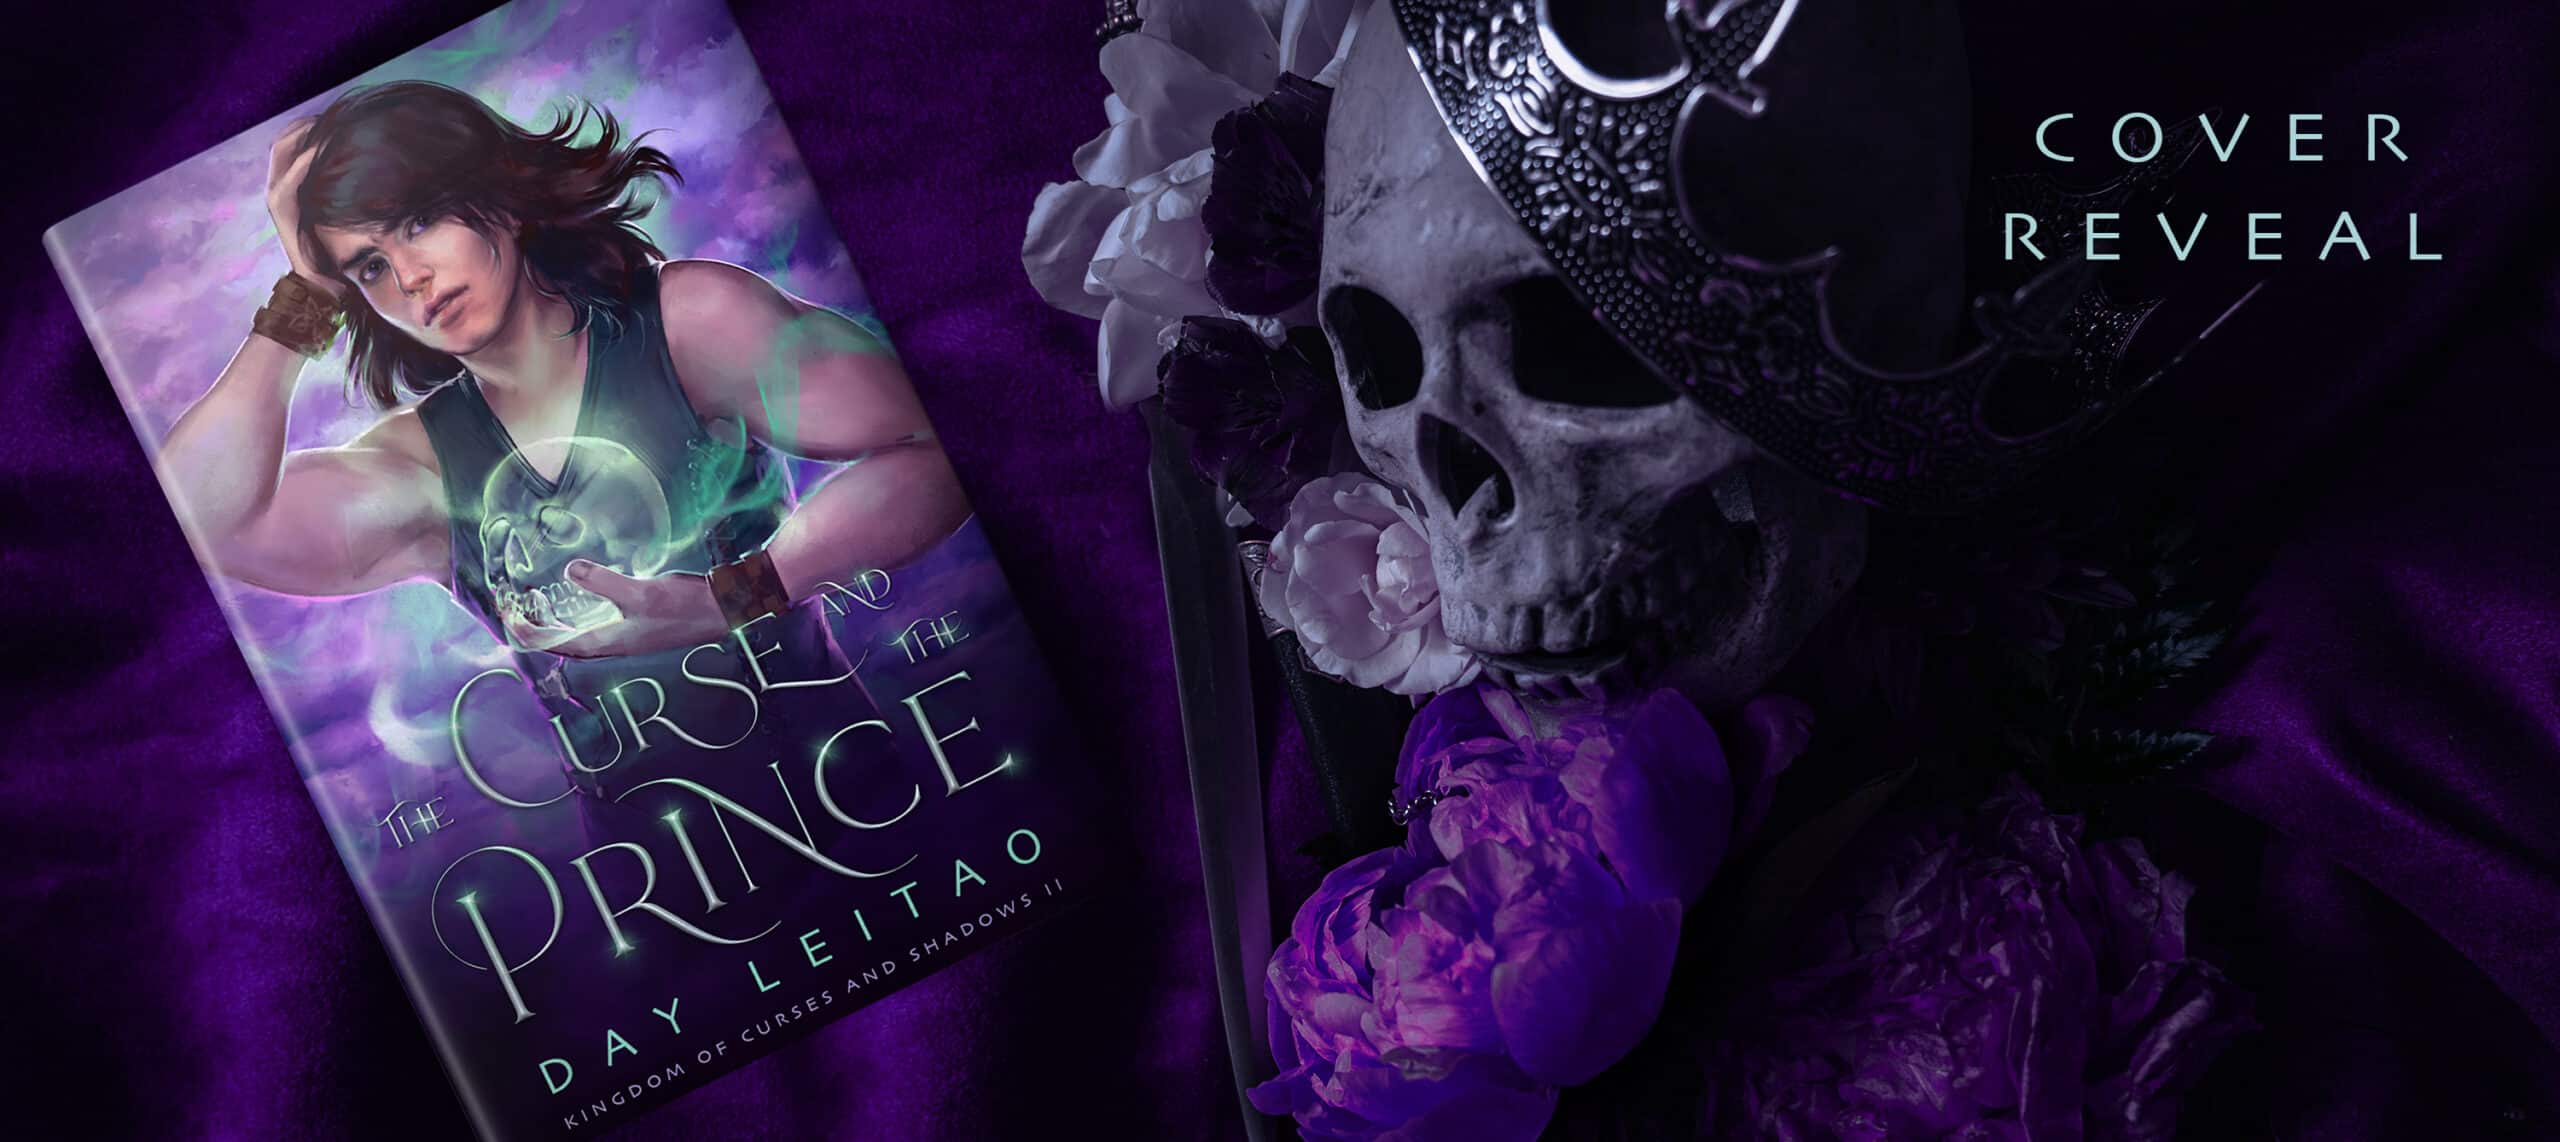 The Curse and the Prince Cover Reveal